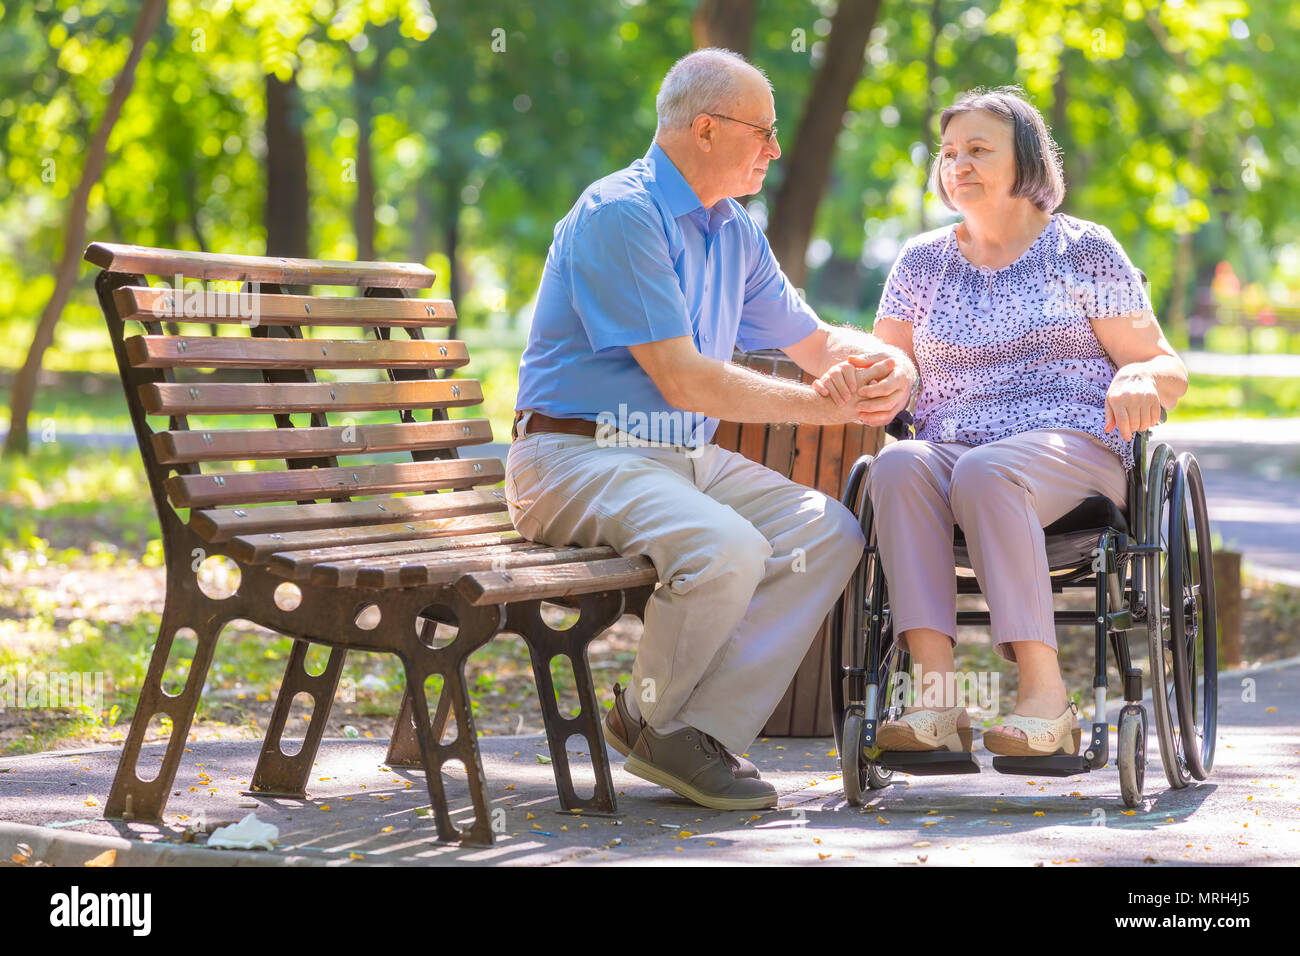 Elderly man strengthens his wife in the wheelchair outside the summer park. - Stock Image